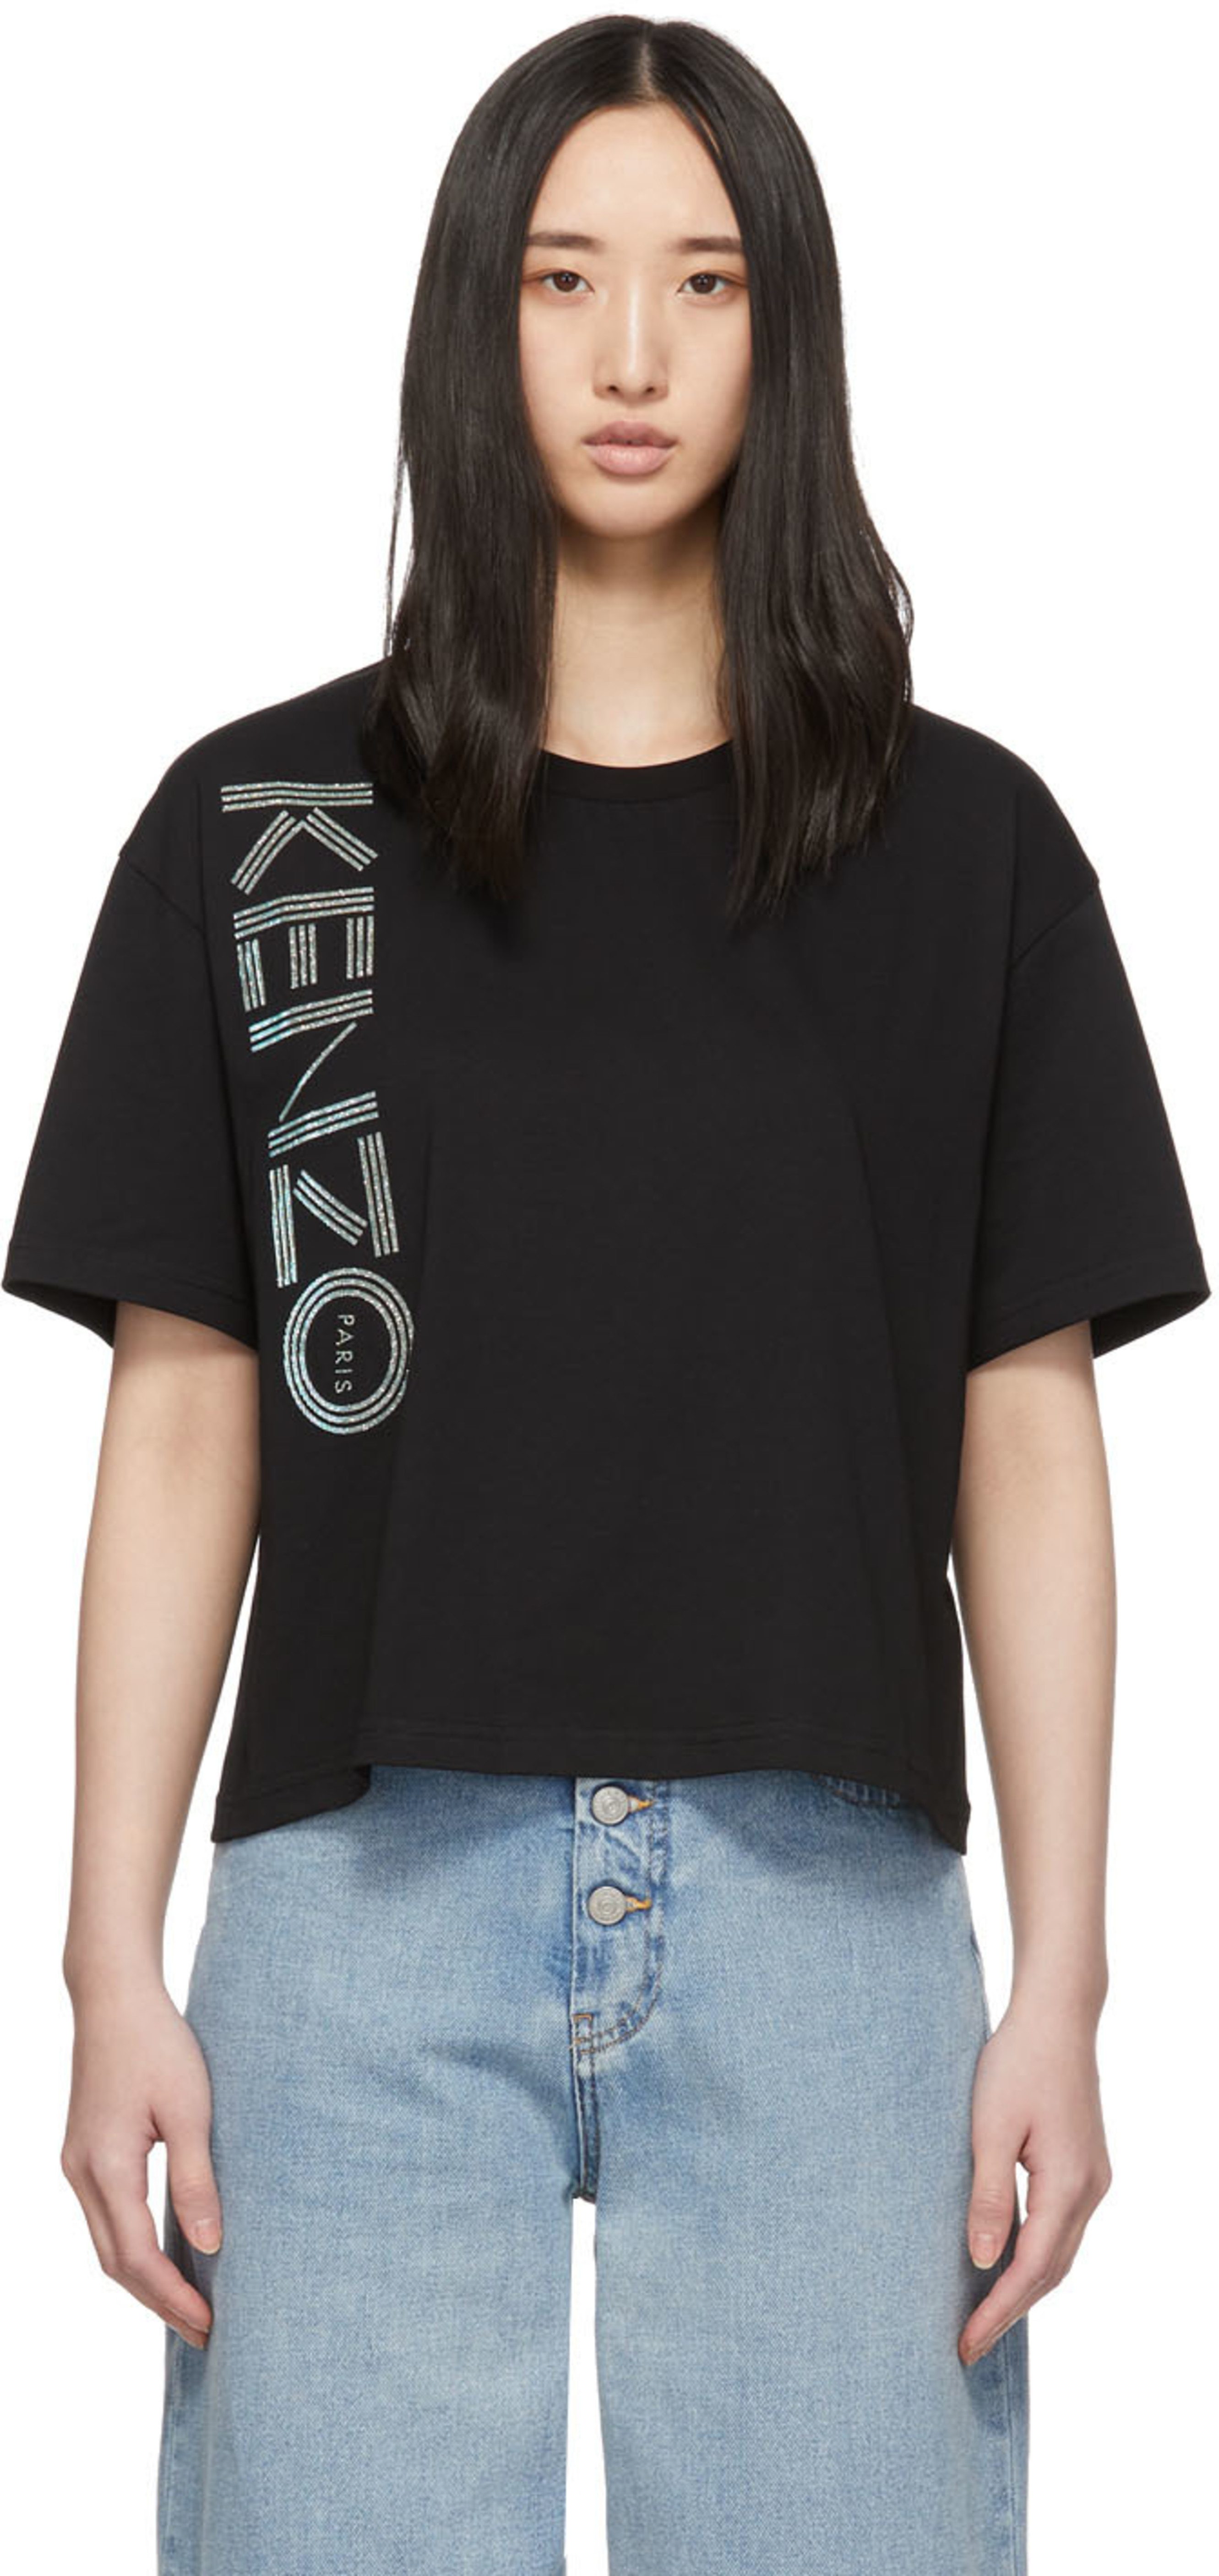 69704f1120198c Kenzo for Women FW19 Collection | SSENSE